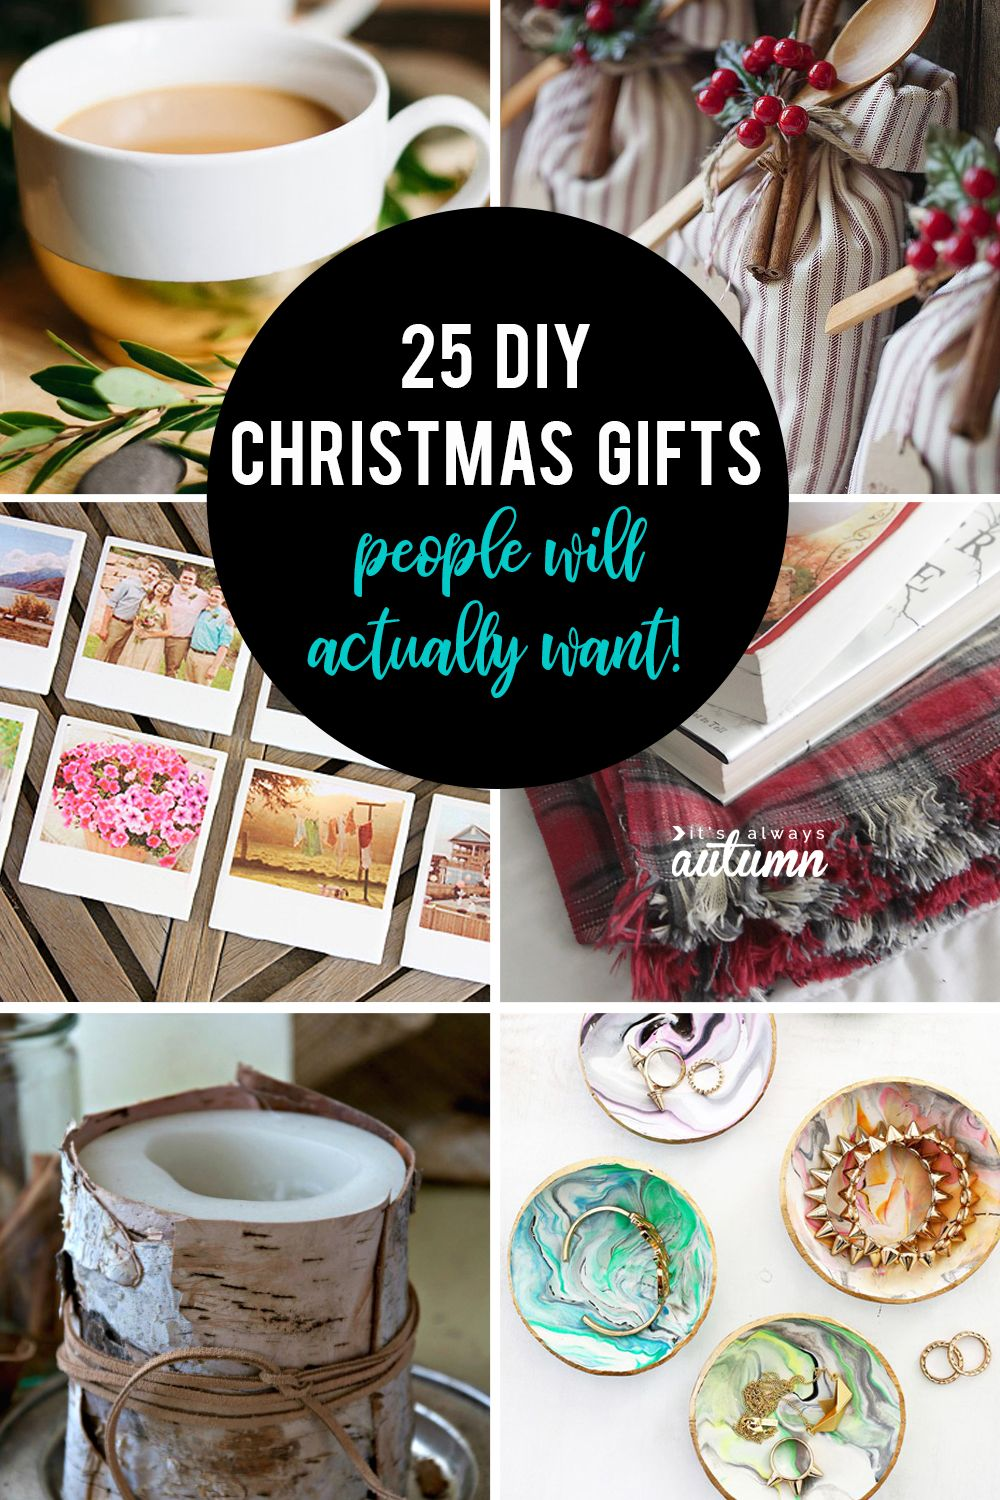 25 beautiful diy christmas gifts that people actually want these are the best homemade christmas gift ideas - Best Homemade Christmas Gifts